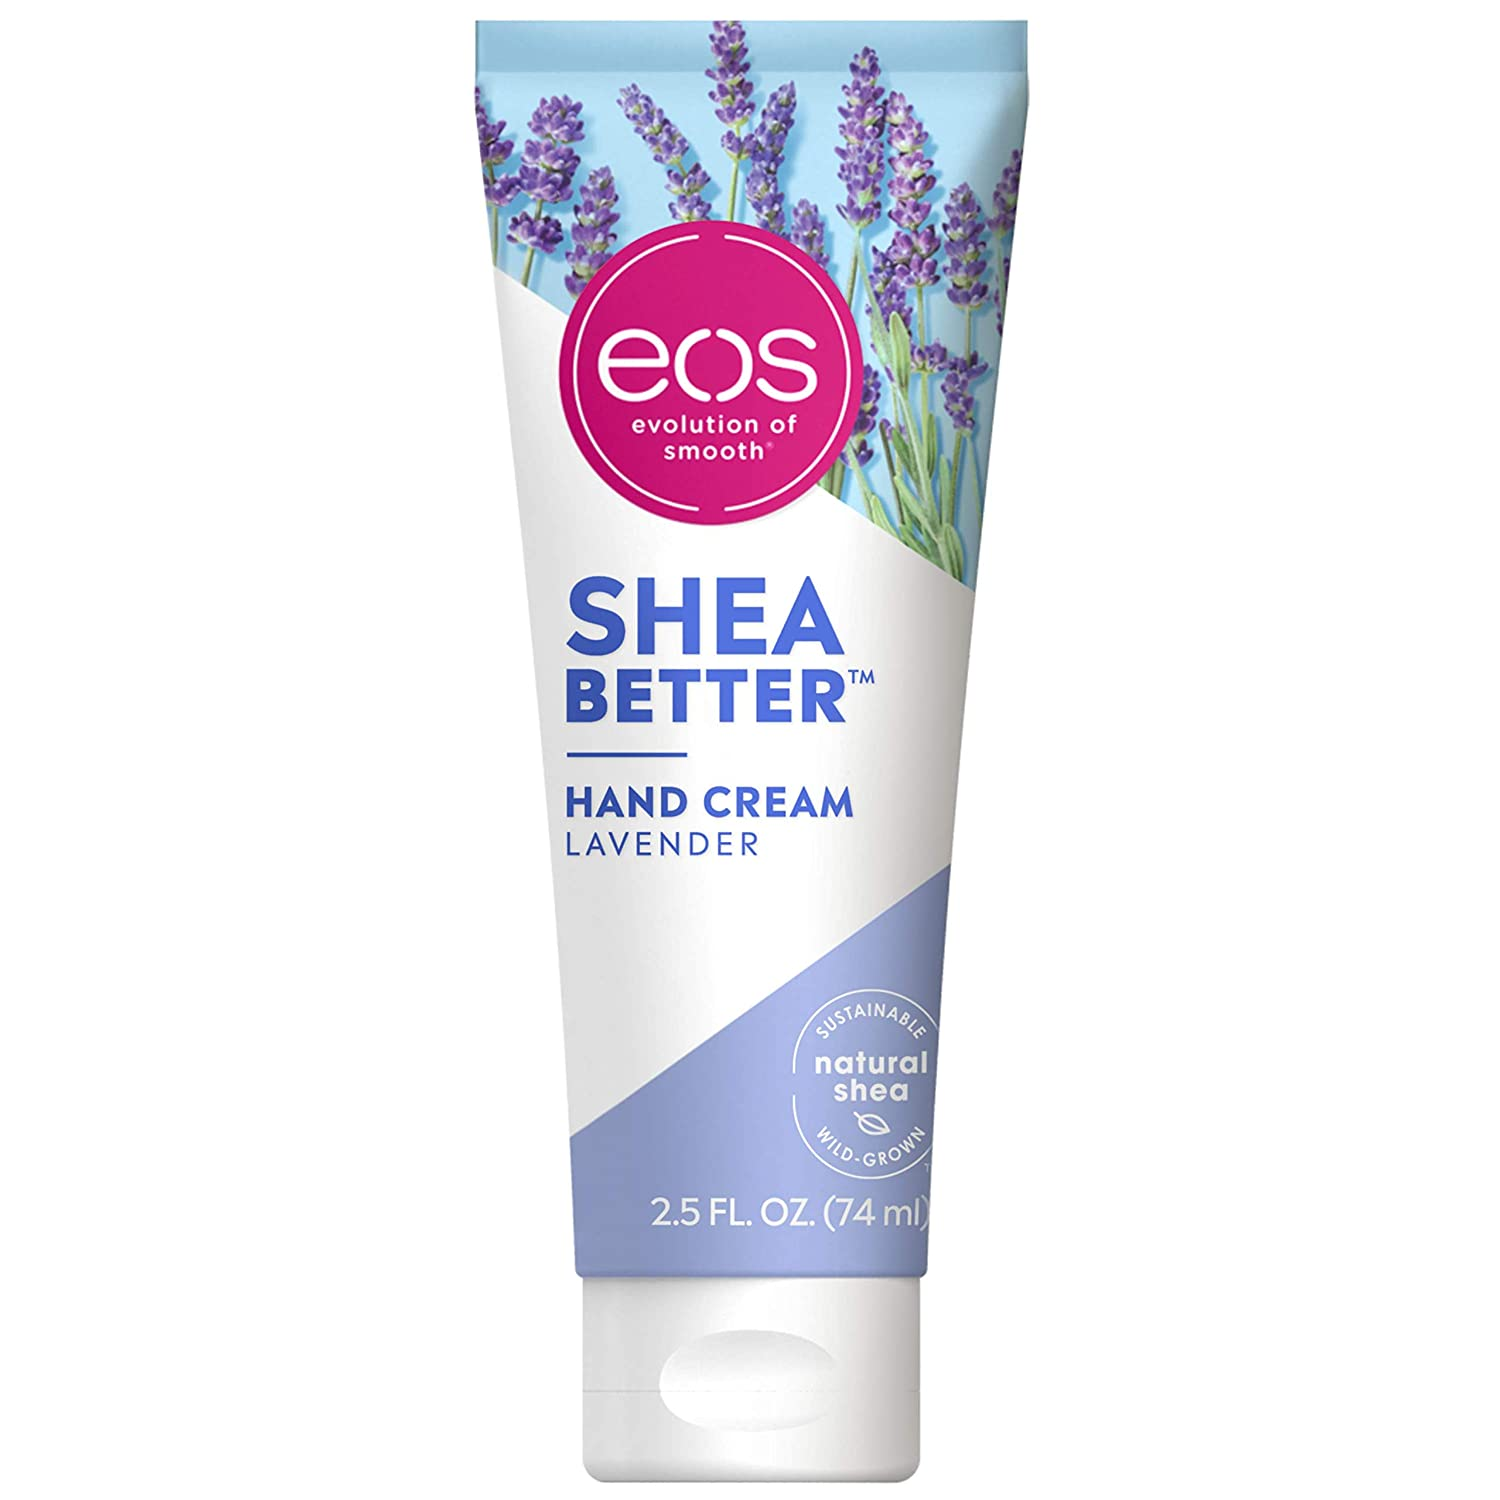 eos Shea Better Hand Cream - Lavender | 24 Hour Hydration that Lasts through Handwashing | Fast-Absorbing & Non-Greasy | 2.5 oz